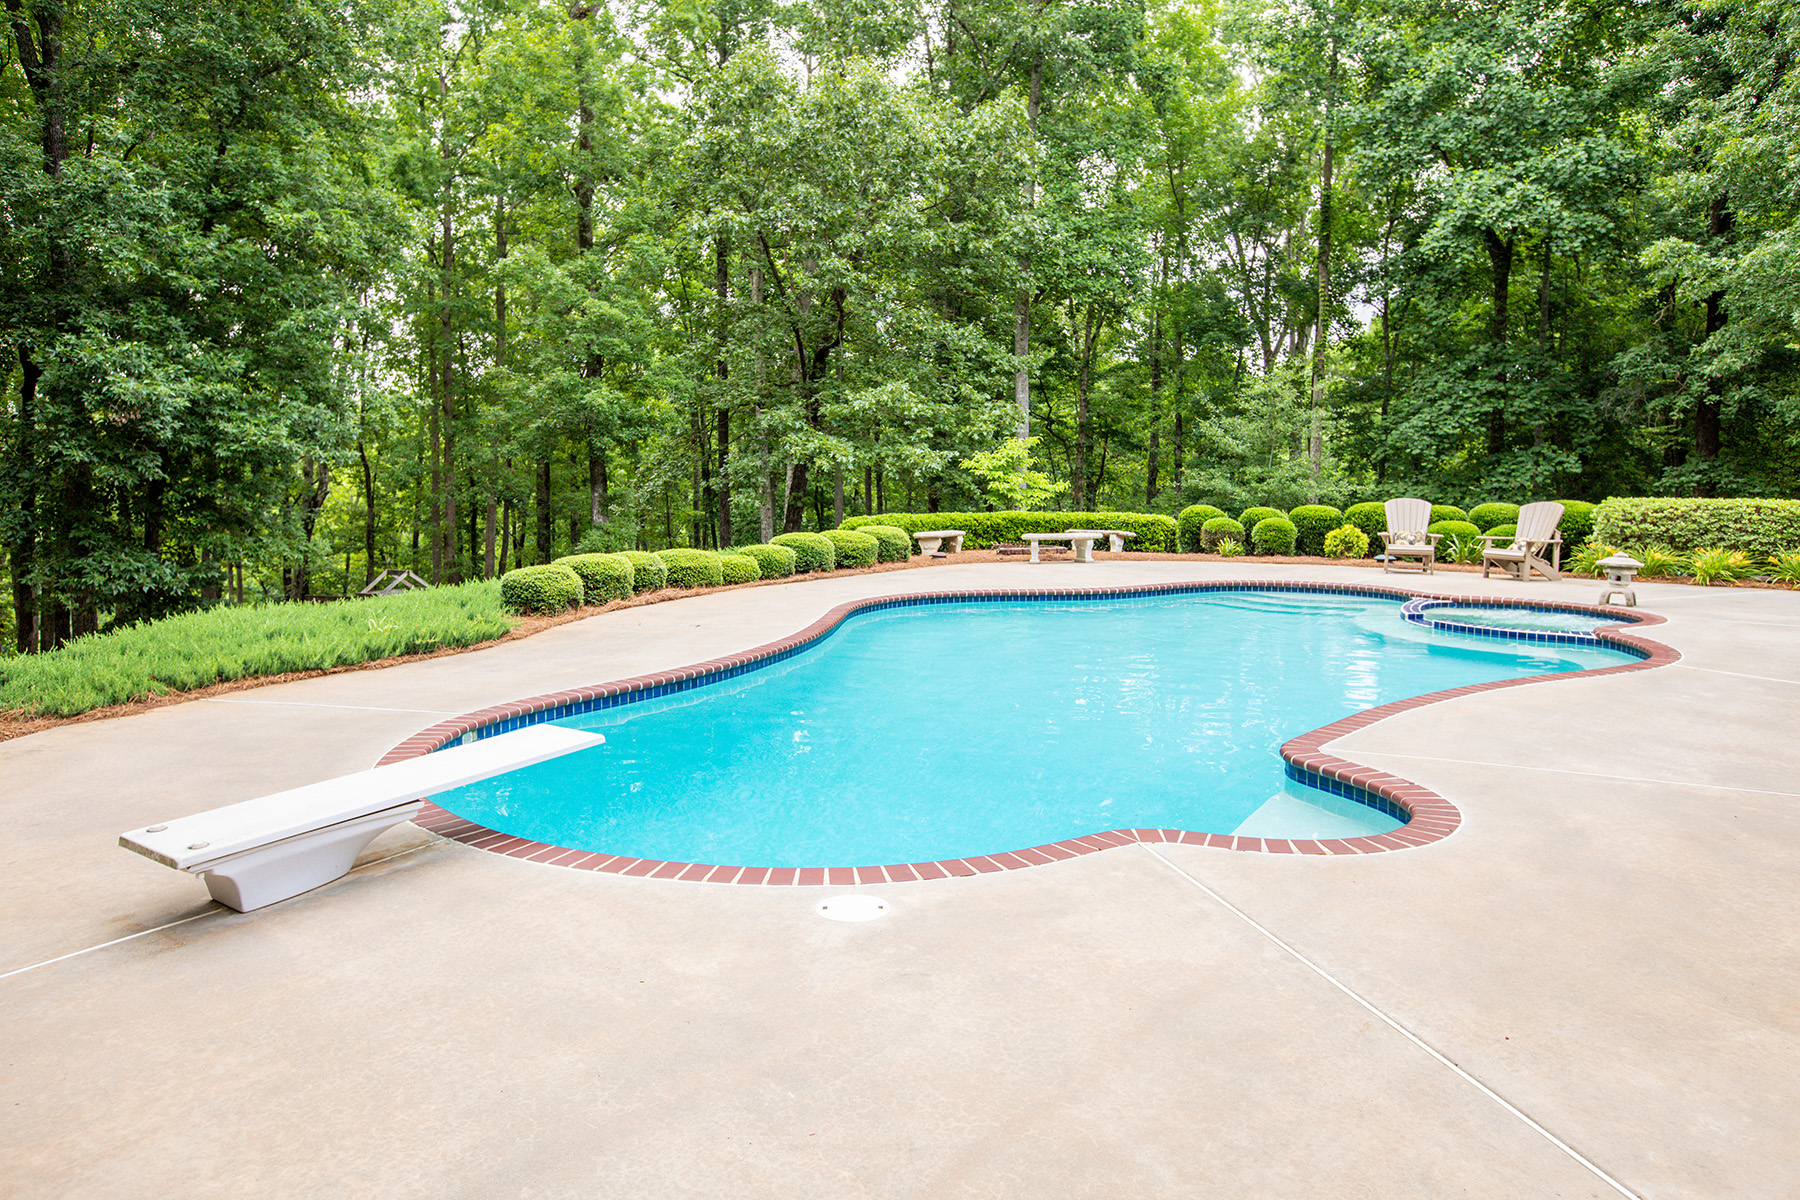 Additional photo for property listing at Luxury Estate on 50 Plus Acres With Tennis Court, Pool, and Pond! 3486 Jonesboro Road Hampton, Γεωργια 30228 Ηνωμενεσ Πολιτειεσ